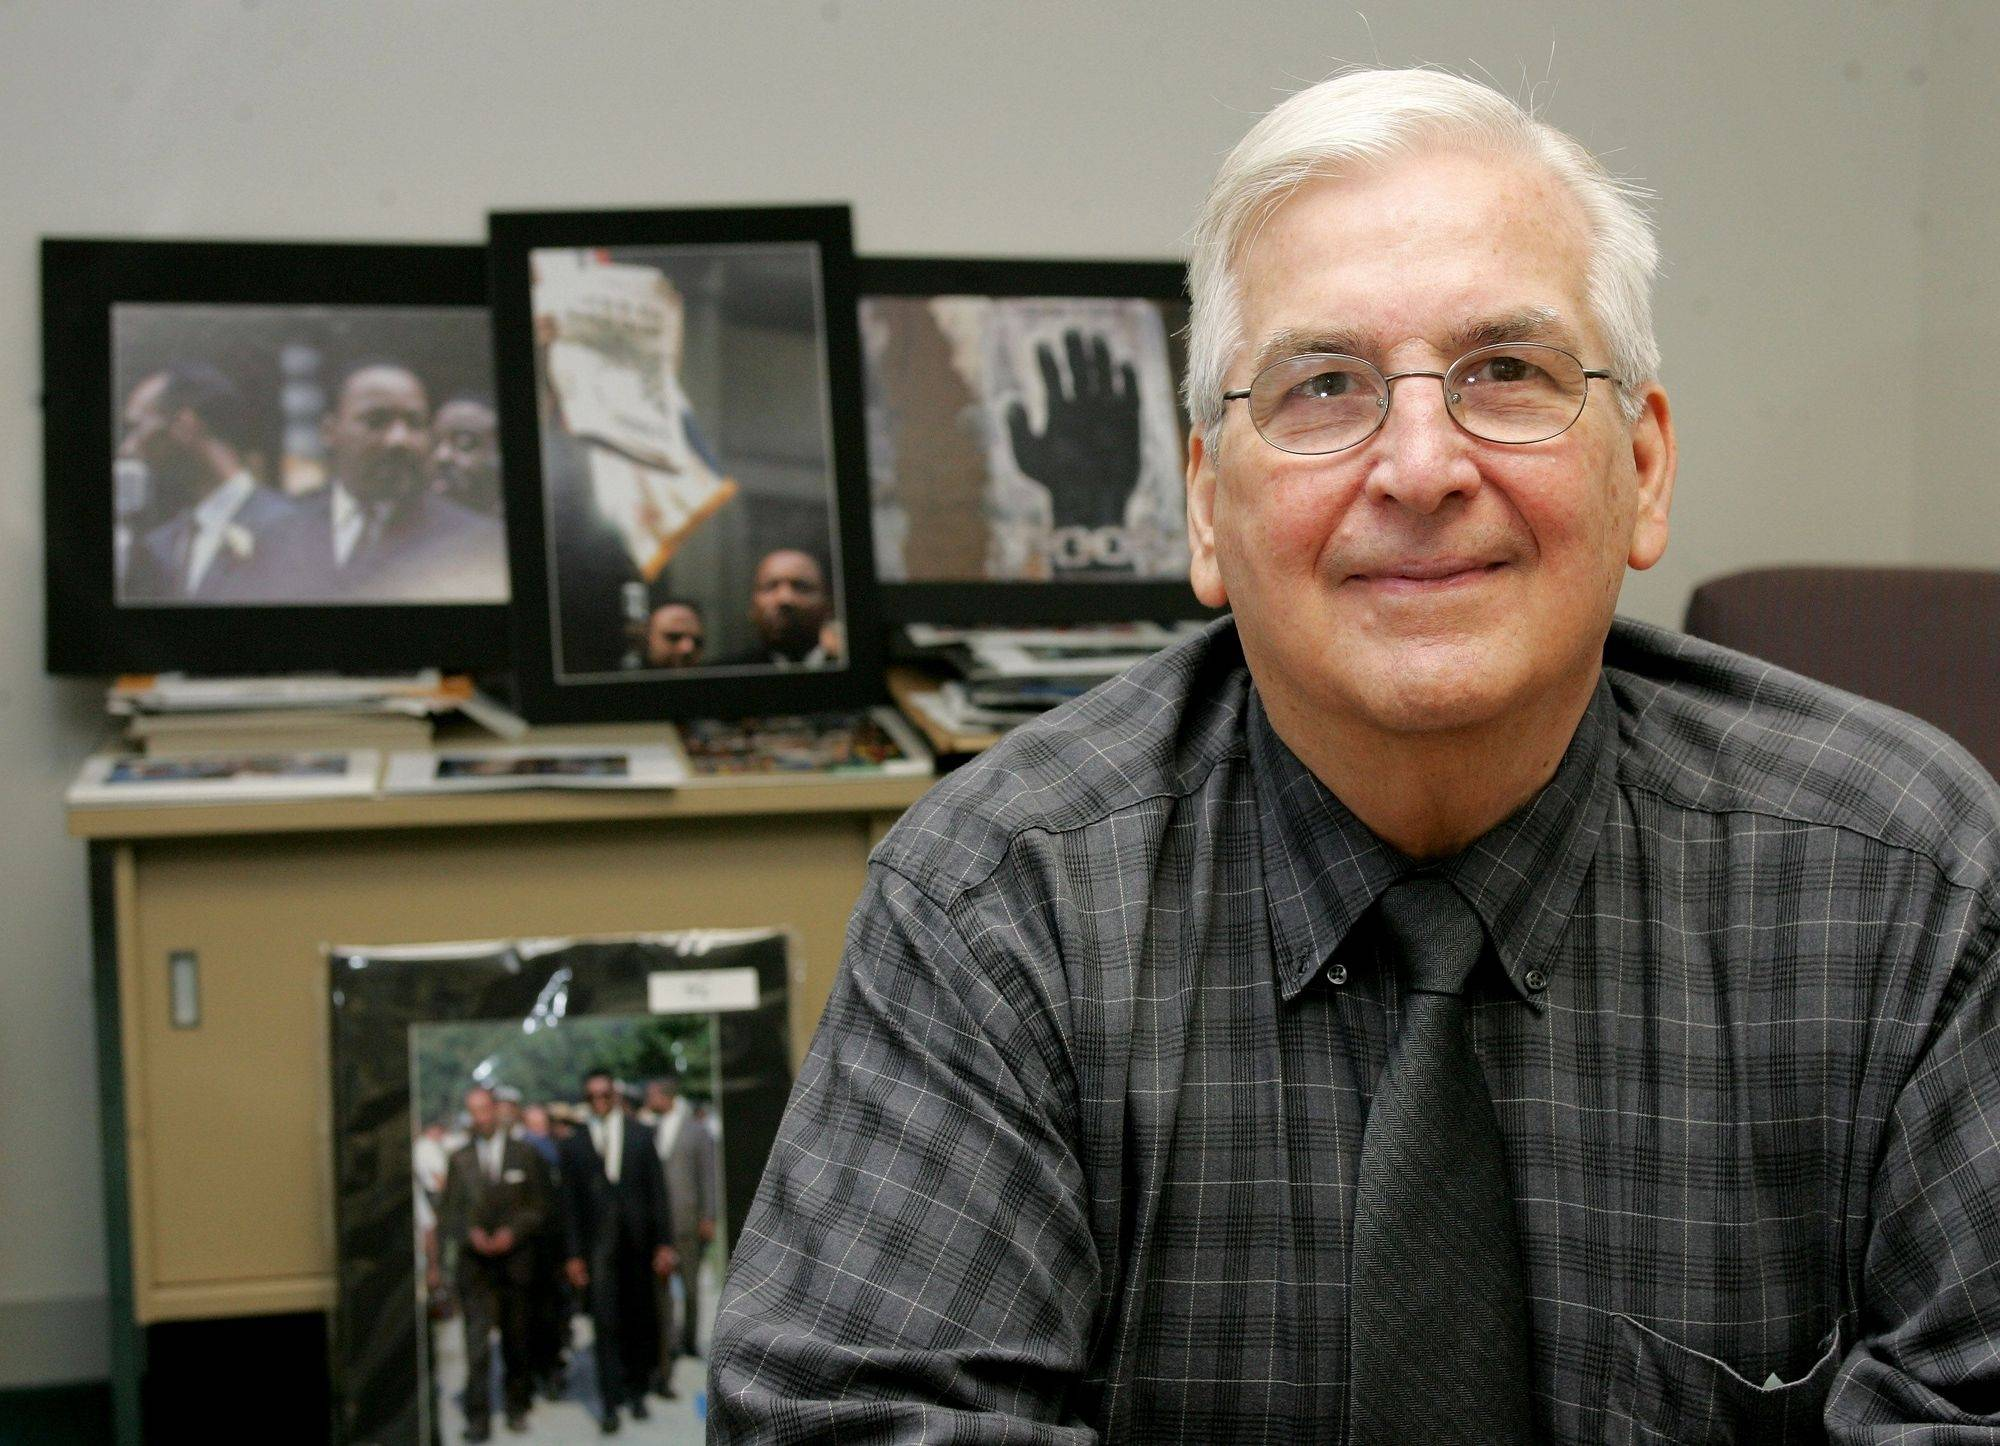 Bernie Kleina, executive director at HOPE Fair Housing Center in Wheaton, in his office with photos he took of the Civil Rights Movement in the background.